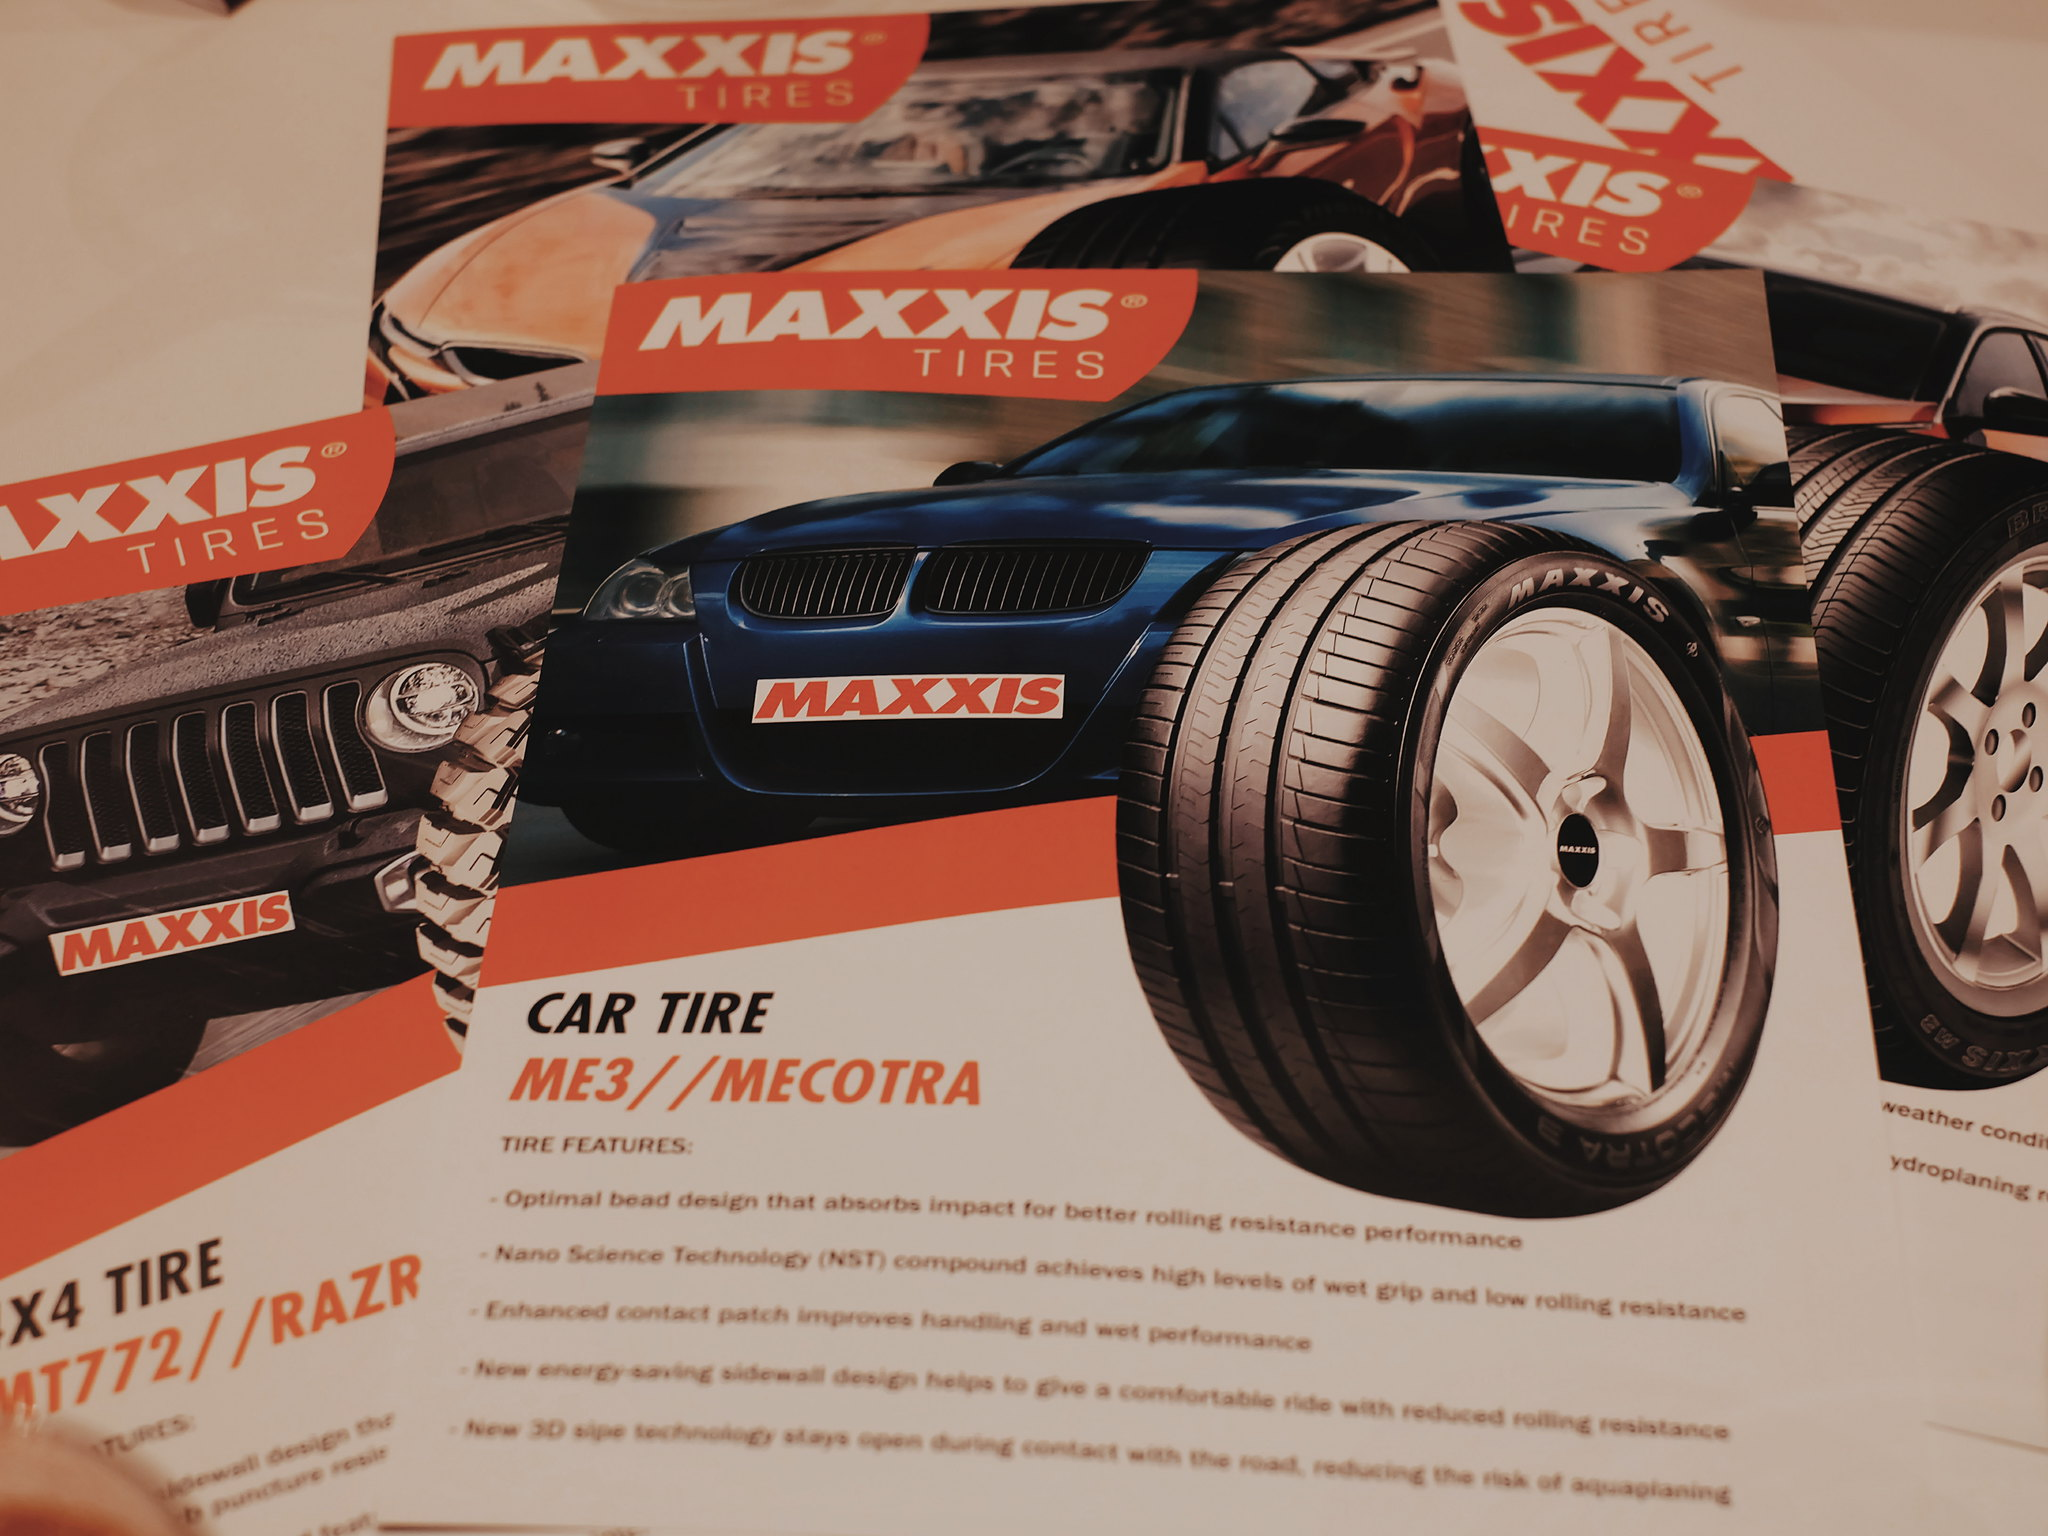 Maxxis Tires Philippines